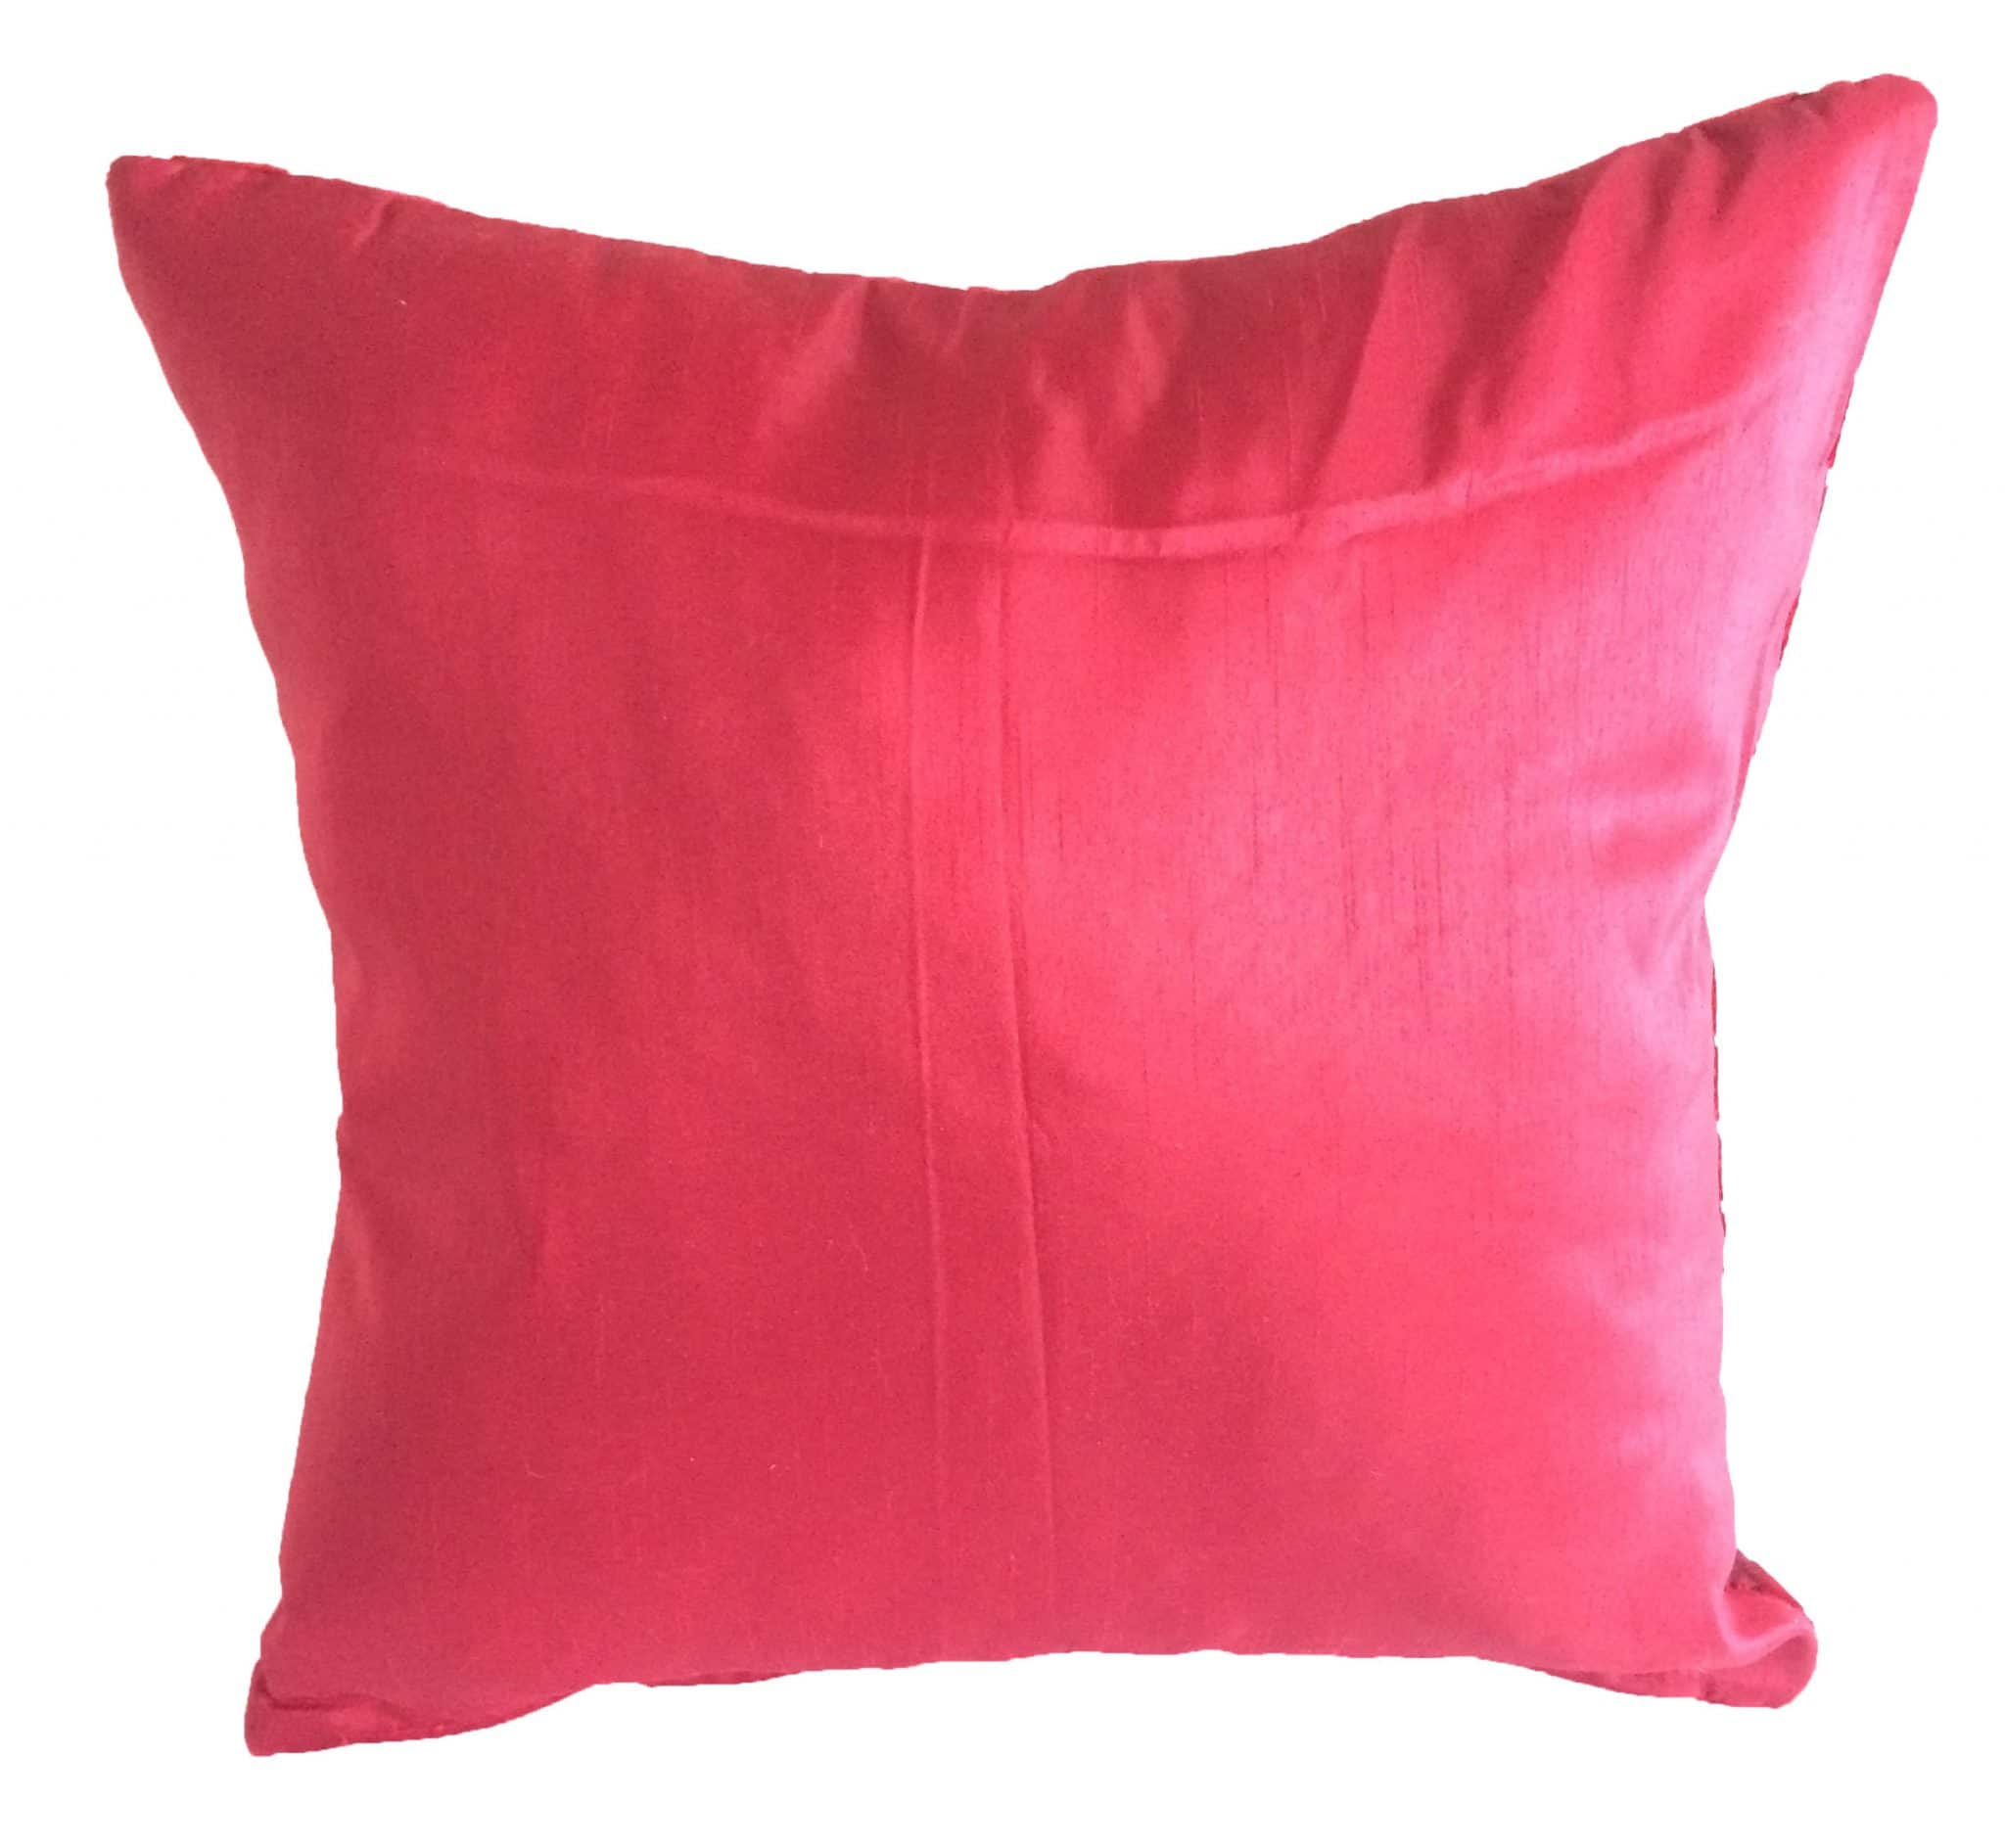 Savoy red cushion covers dublin ireland for Sofa cushion covers ireland